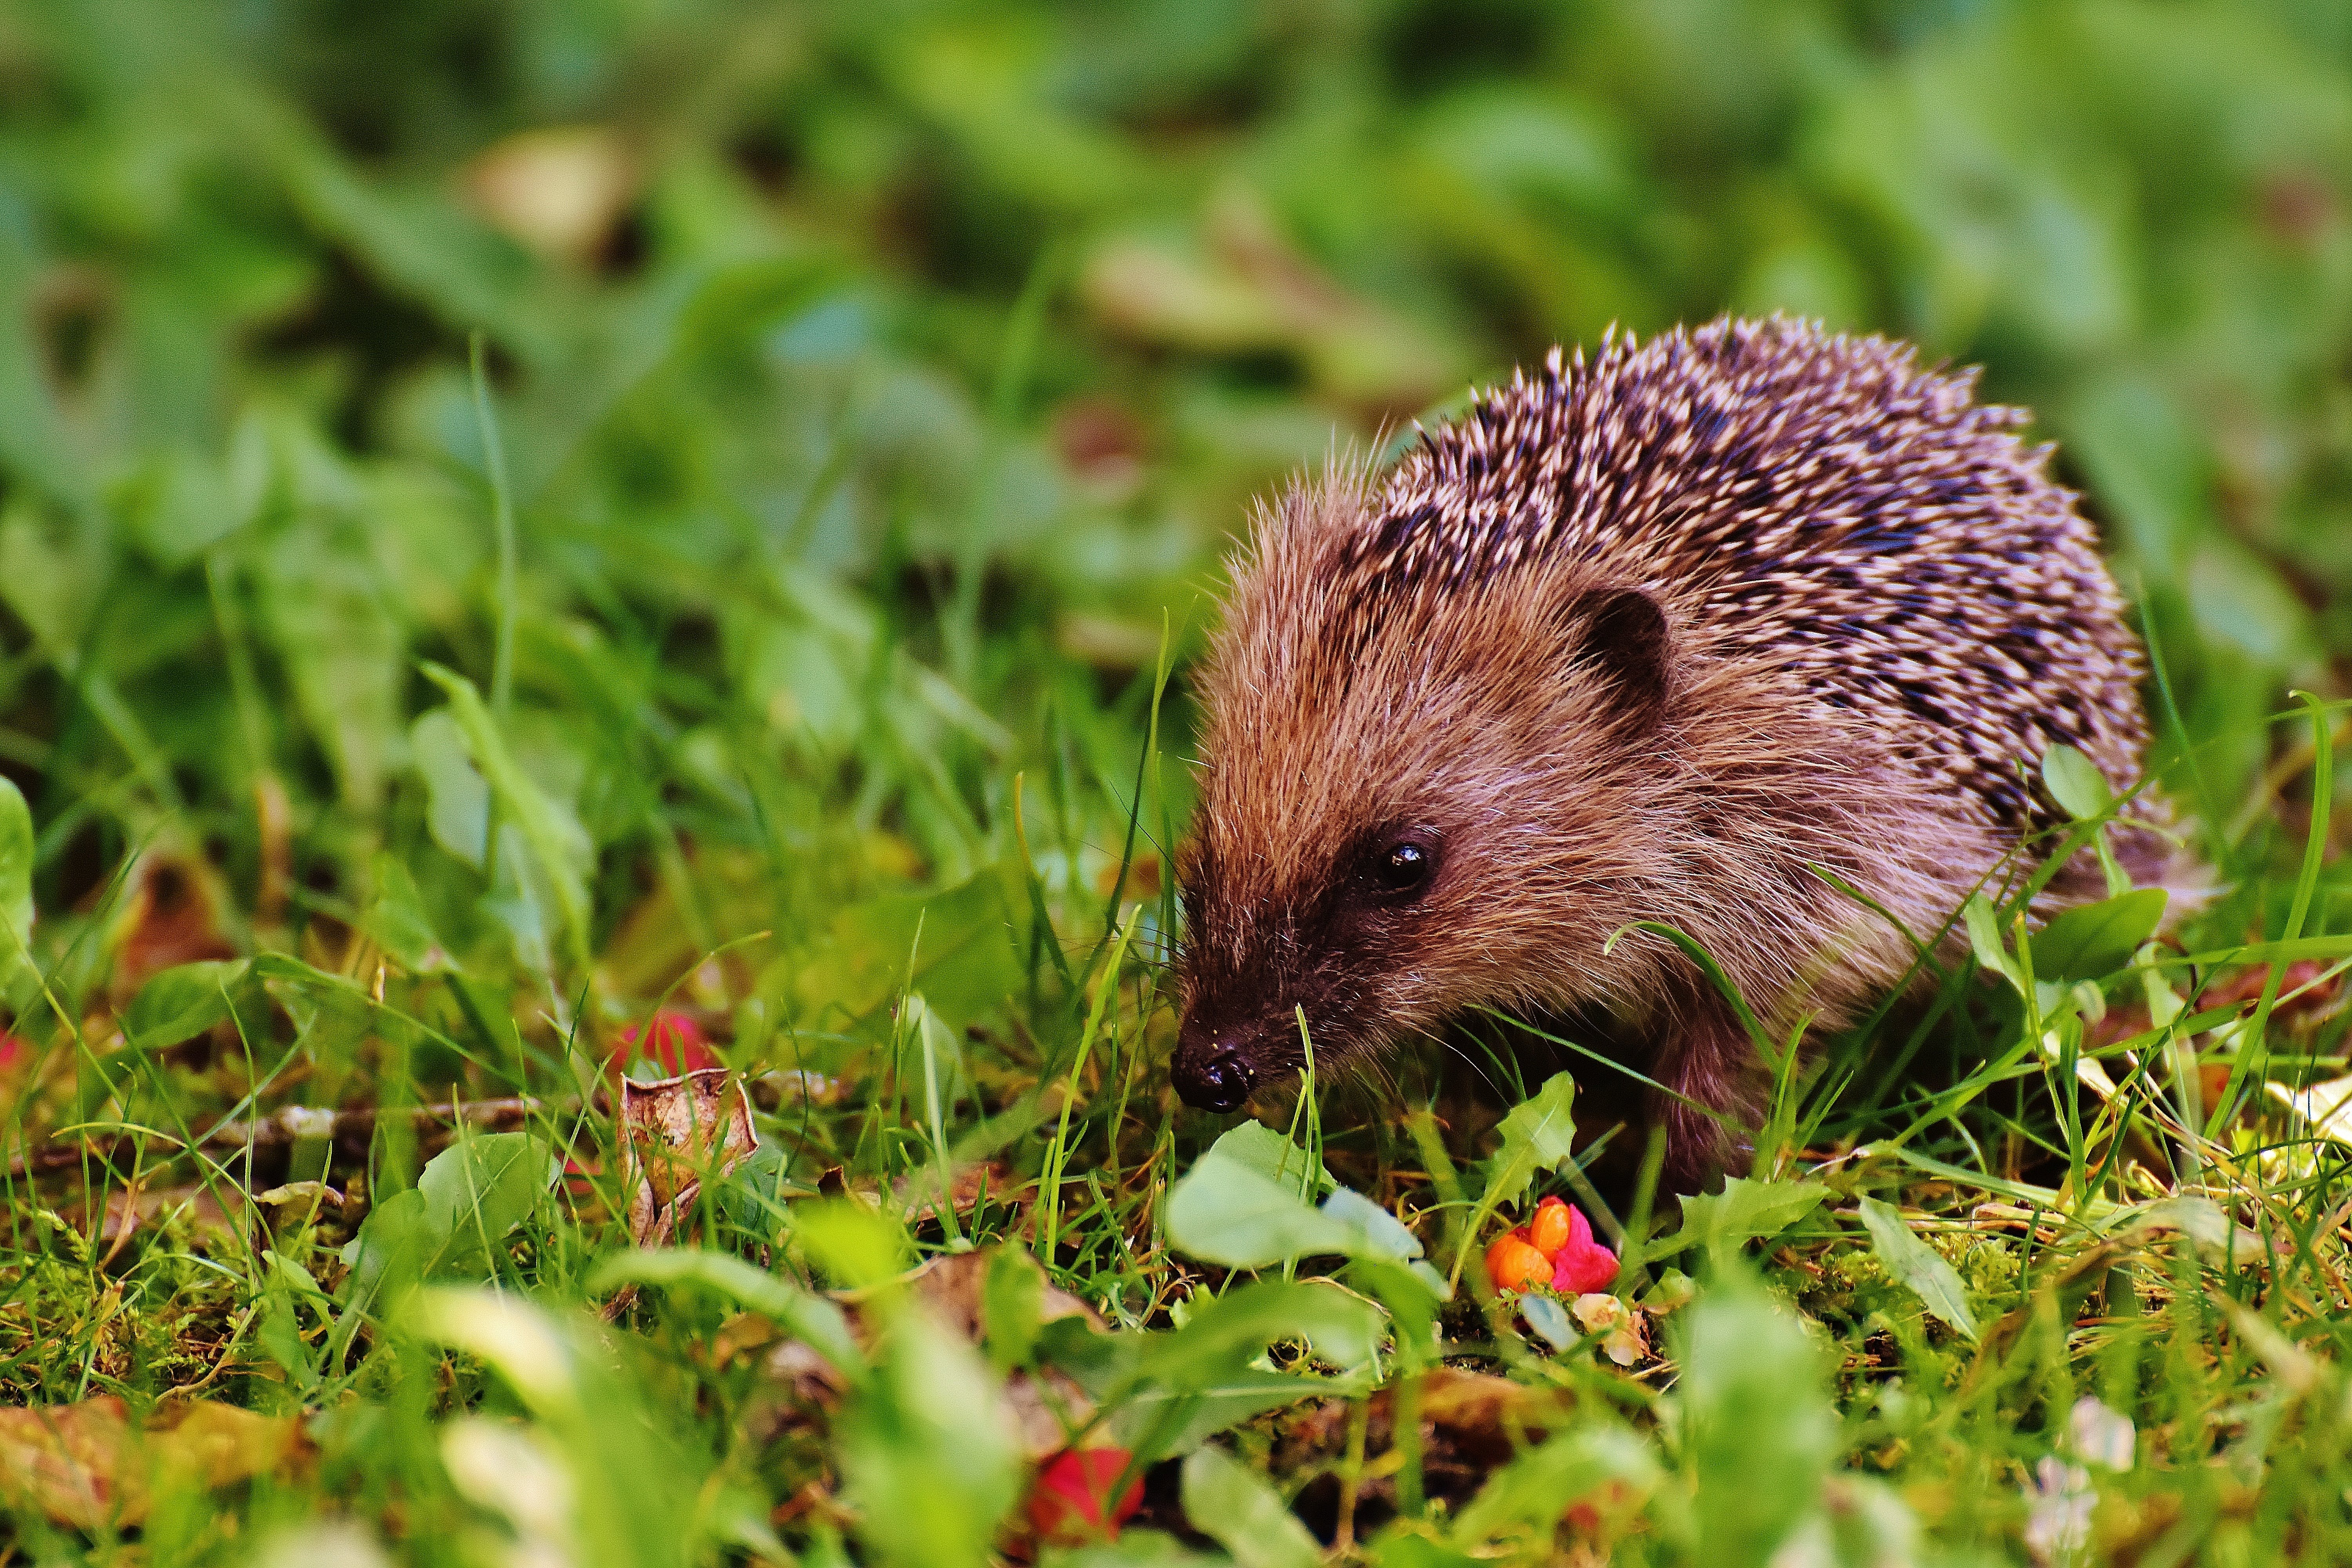 Brown Hedgehog on Grass Field Closuep Photography